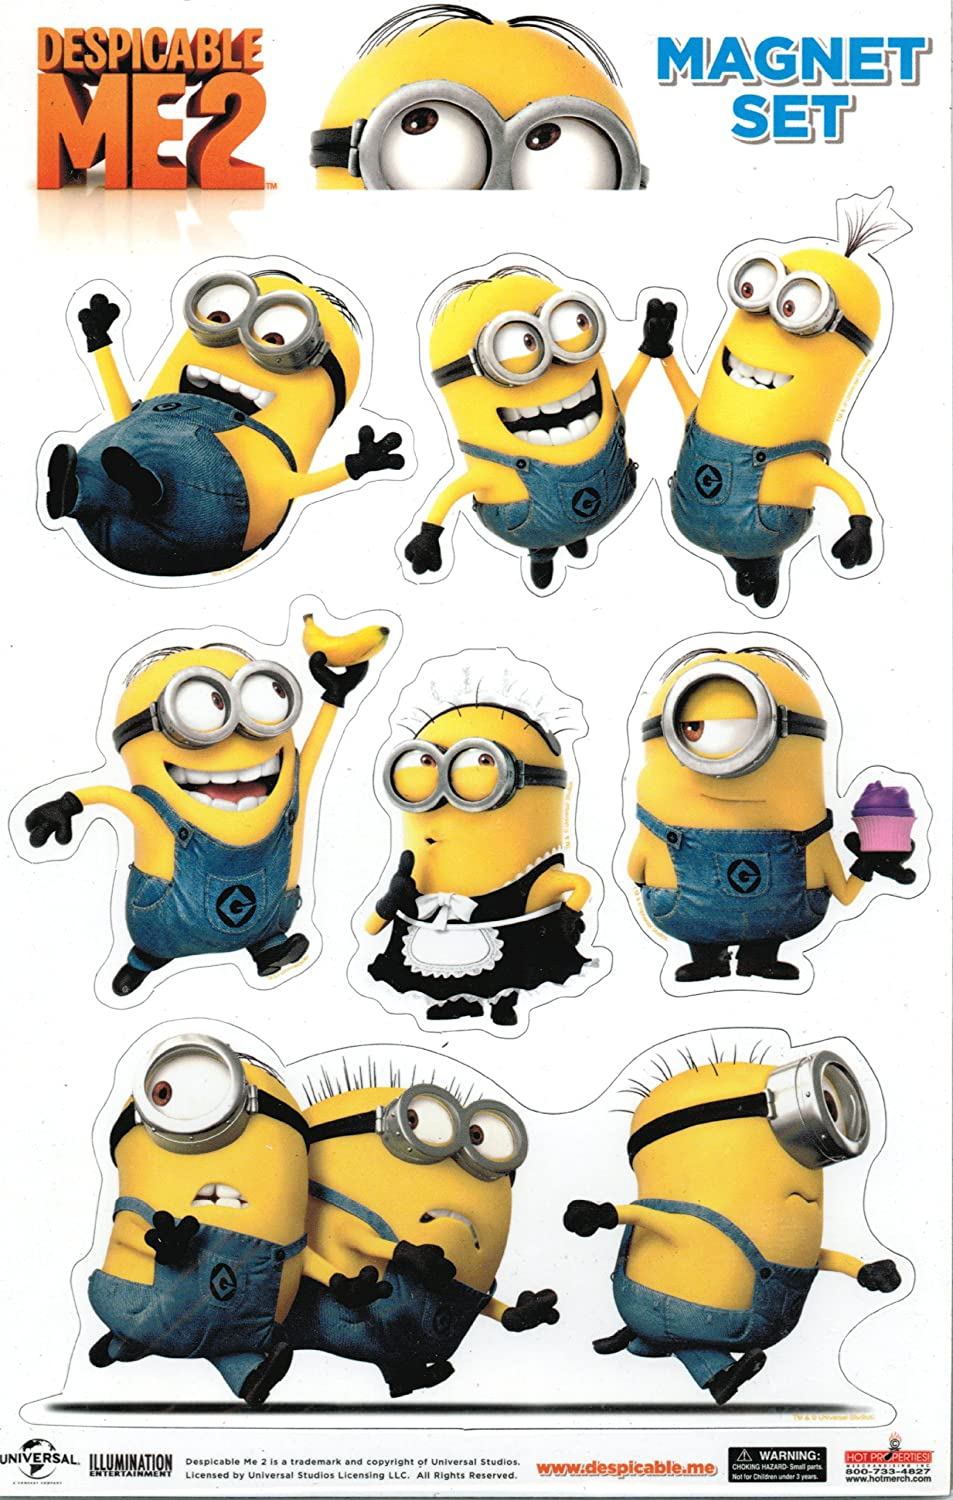 Despicable Me 2 Minions Magnet Set Toy Zany